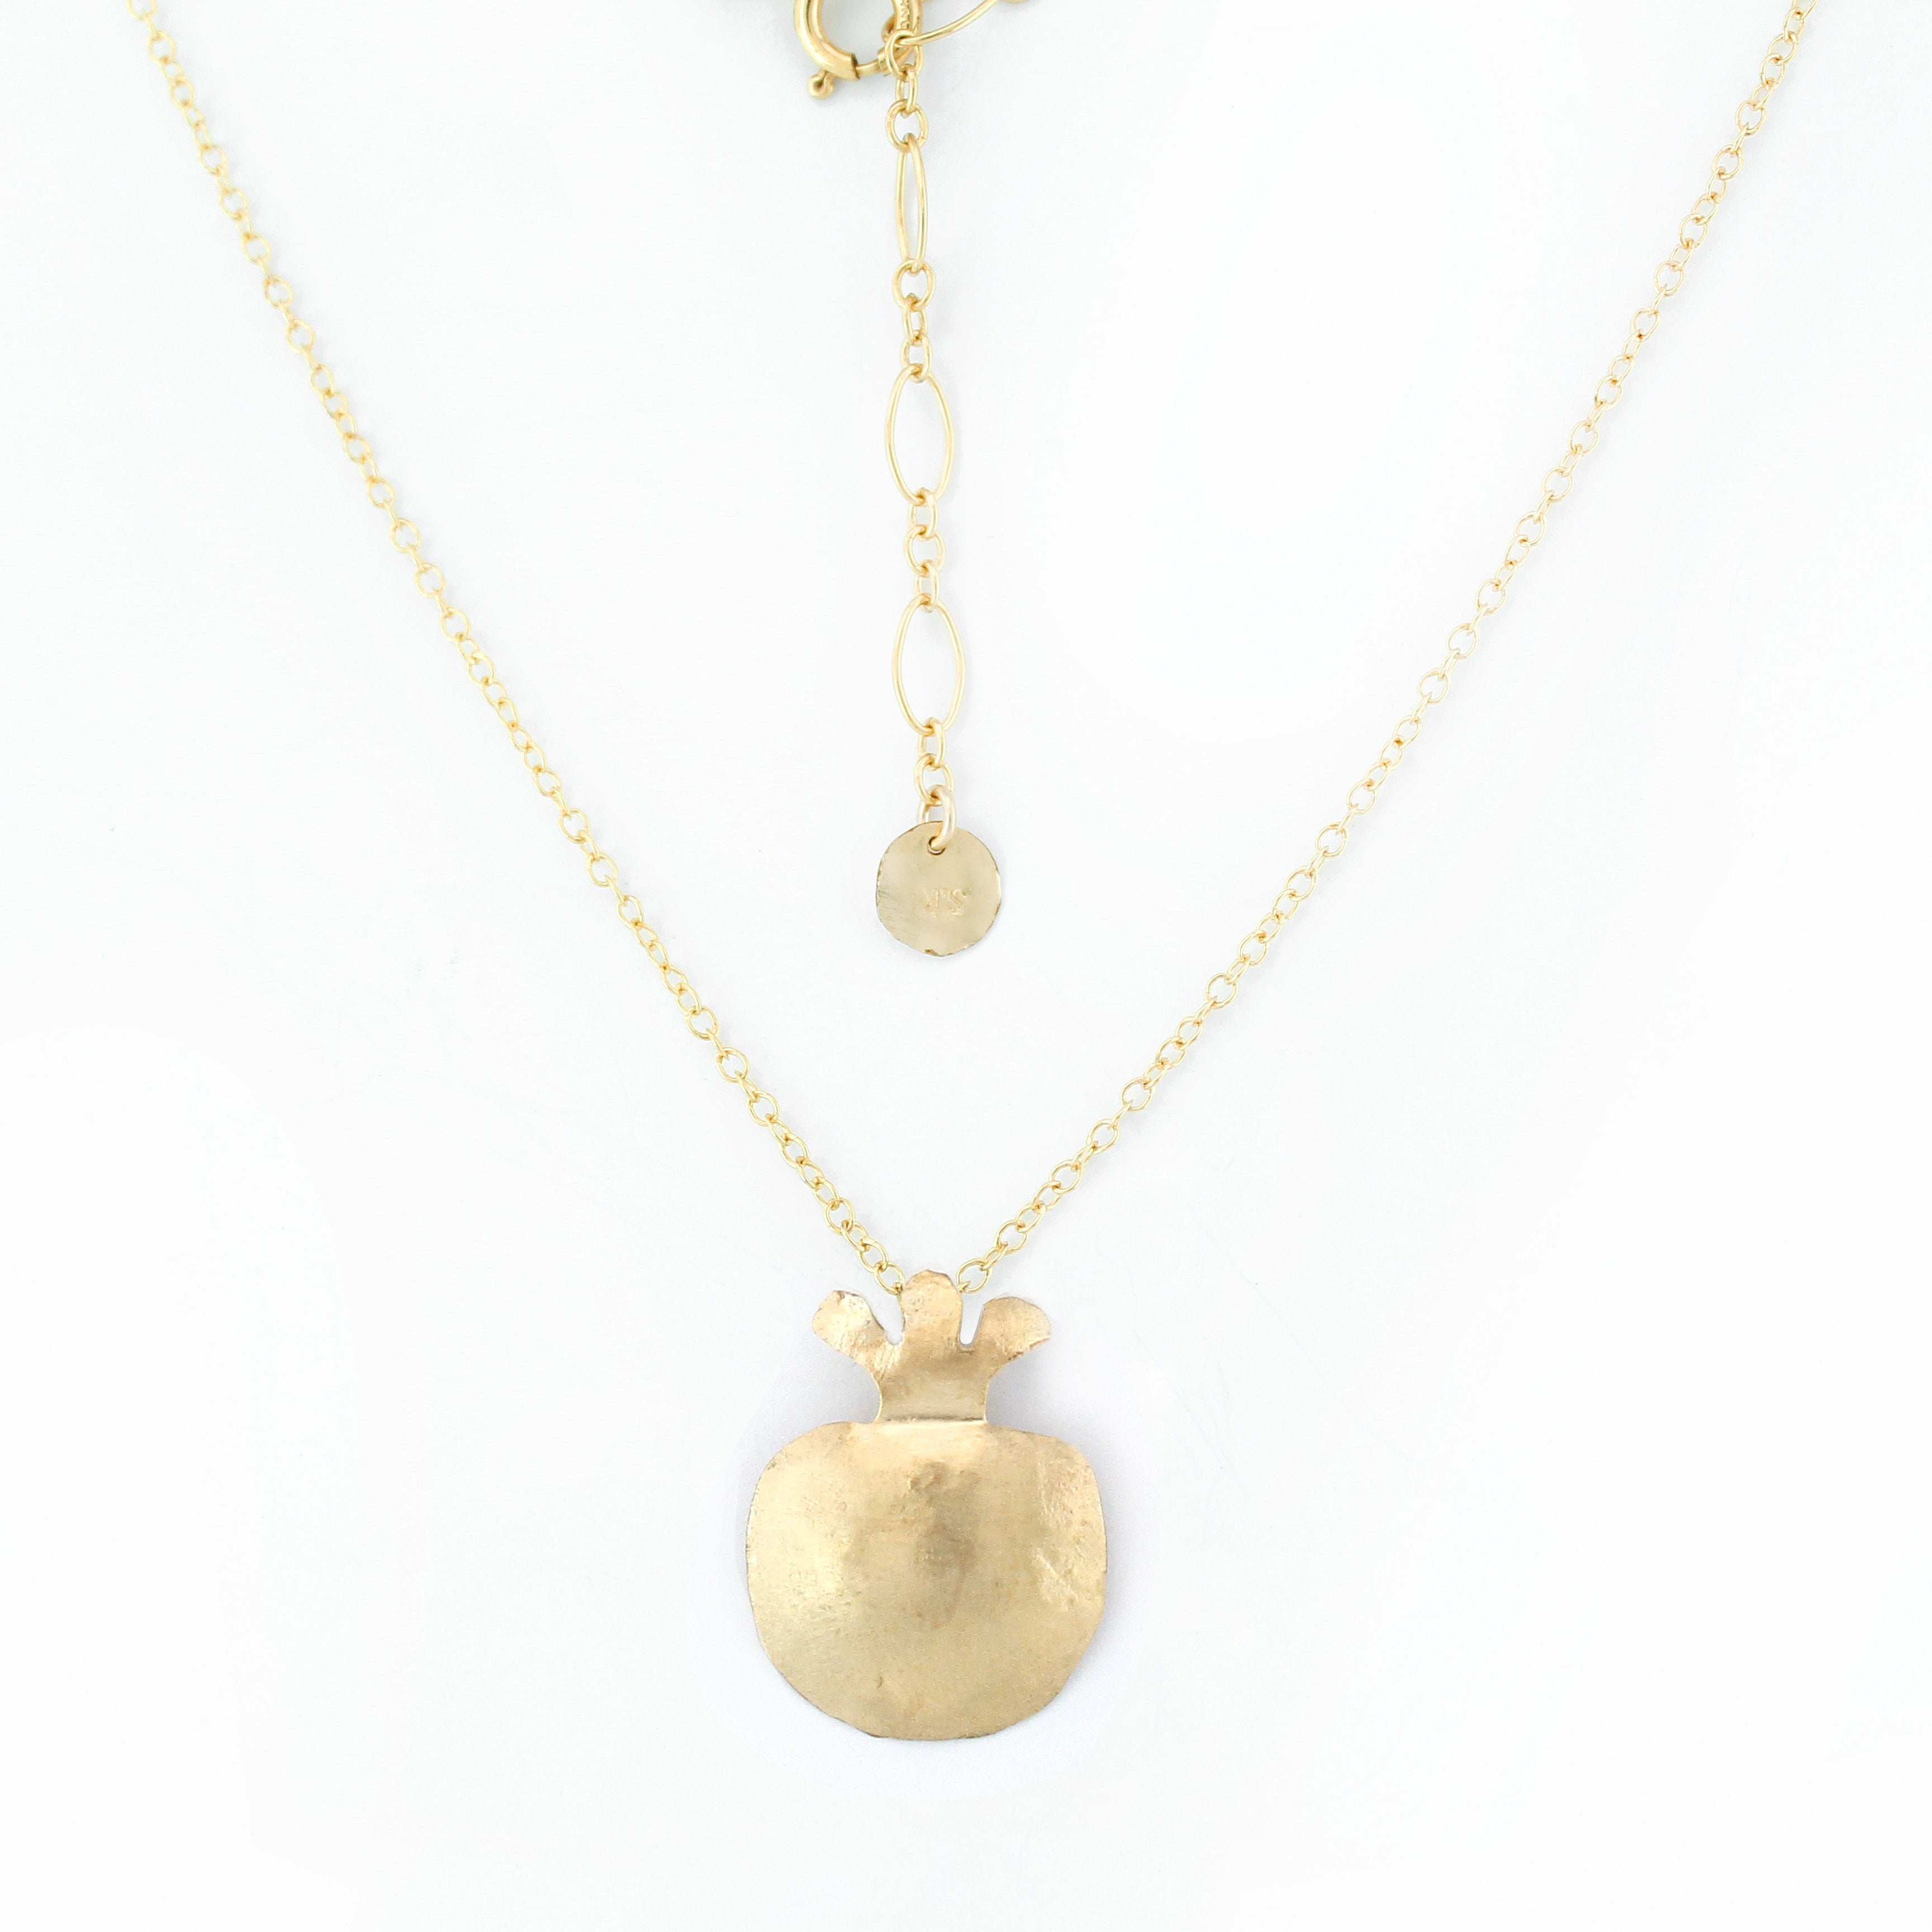 Pomegranate 14K Gold filled Necklace - Shulamit Kanter Official Store